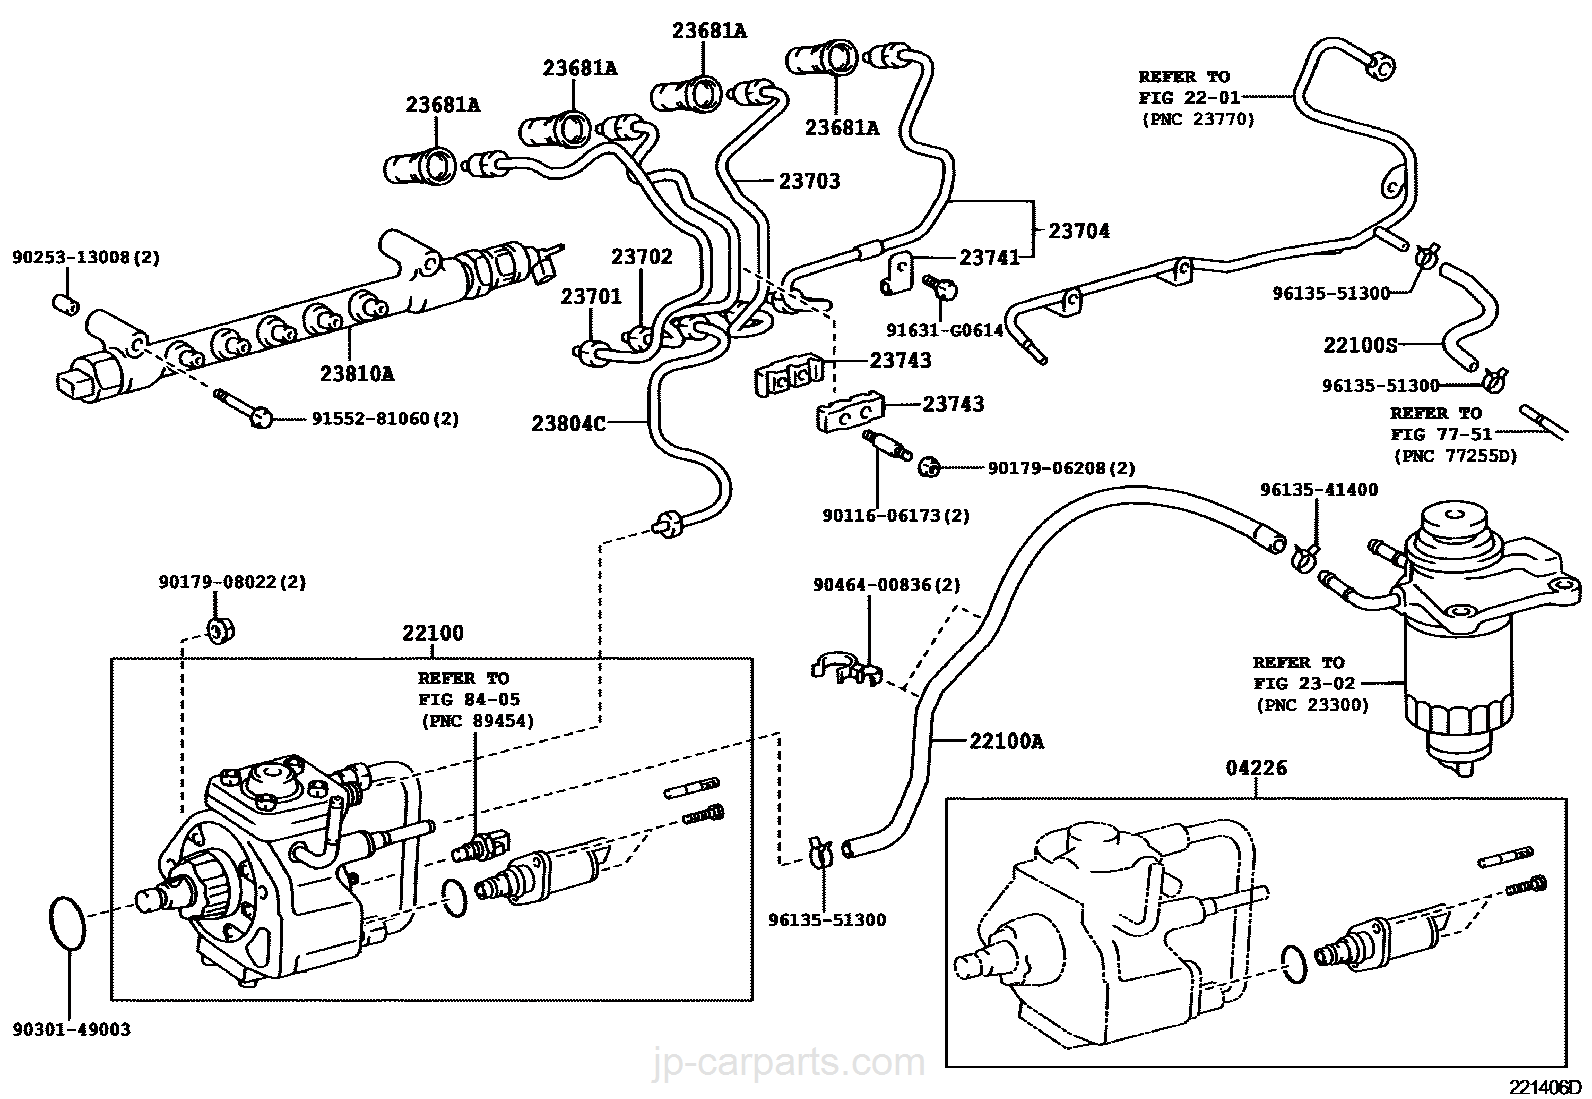 Injection Pump Assembly Toyota